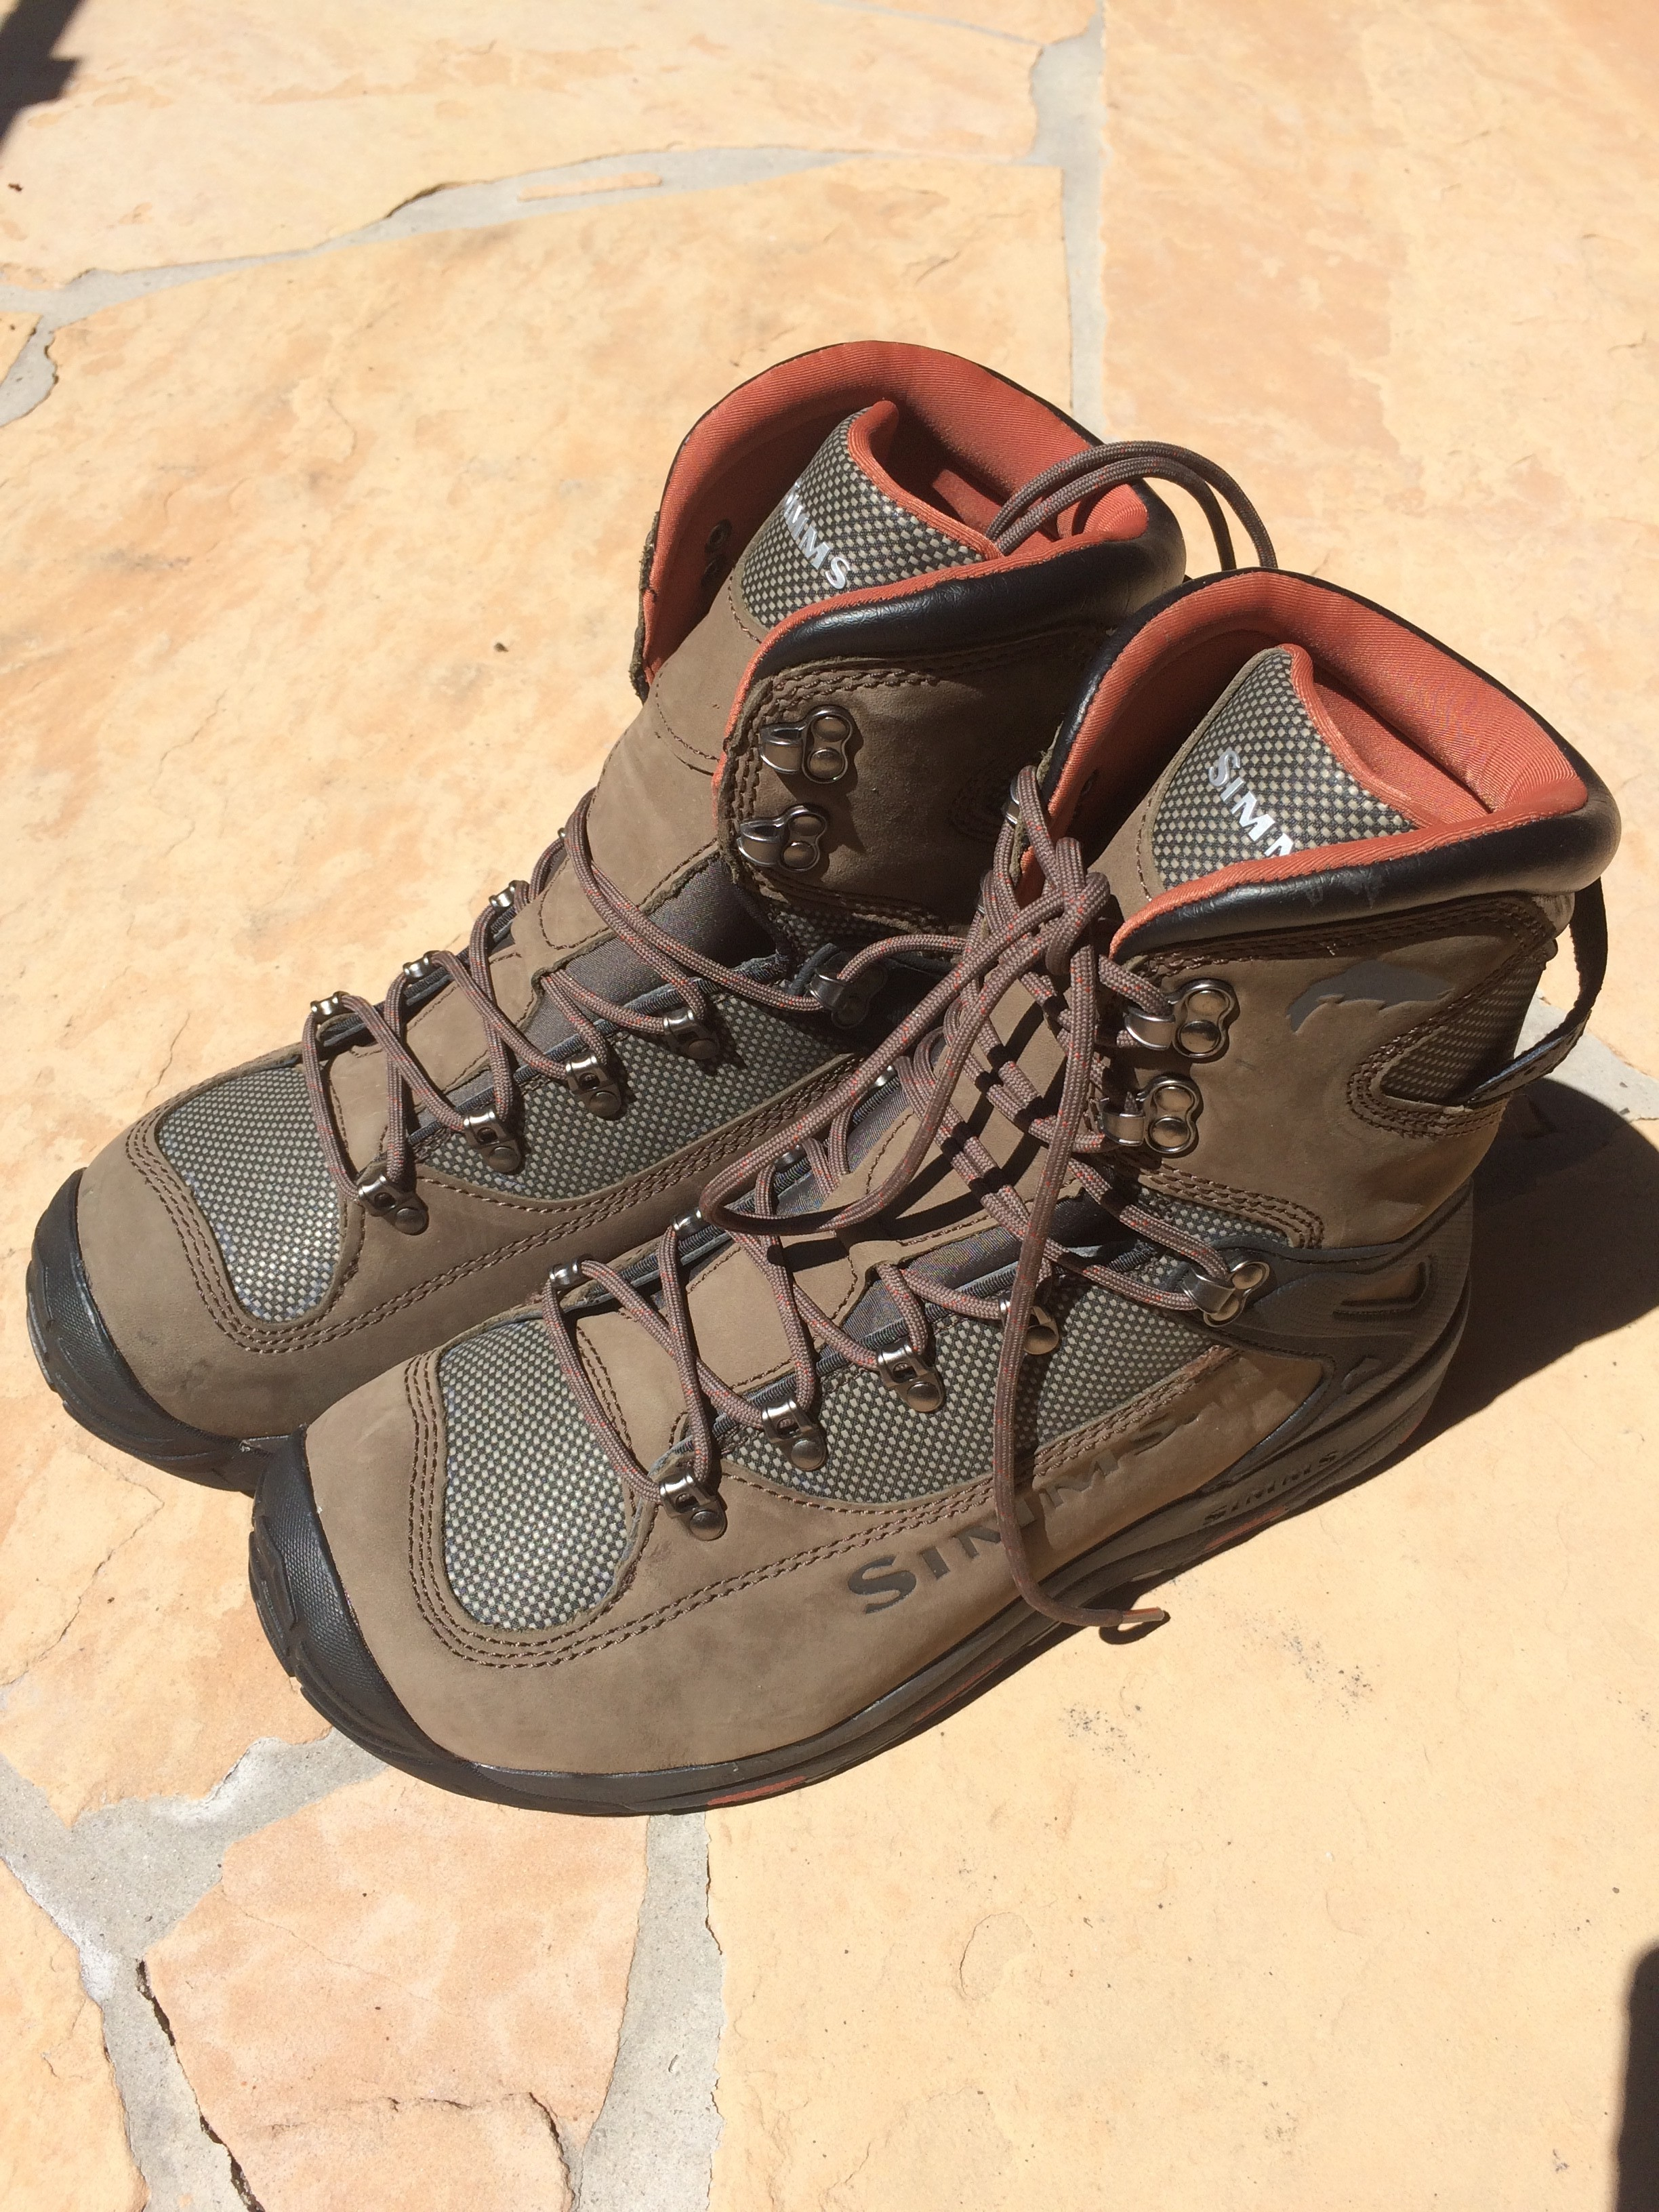 Simms G3 Guide Boots